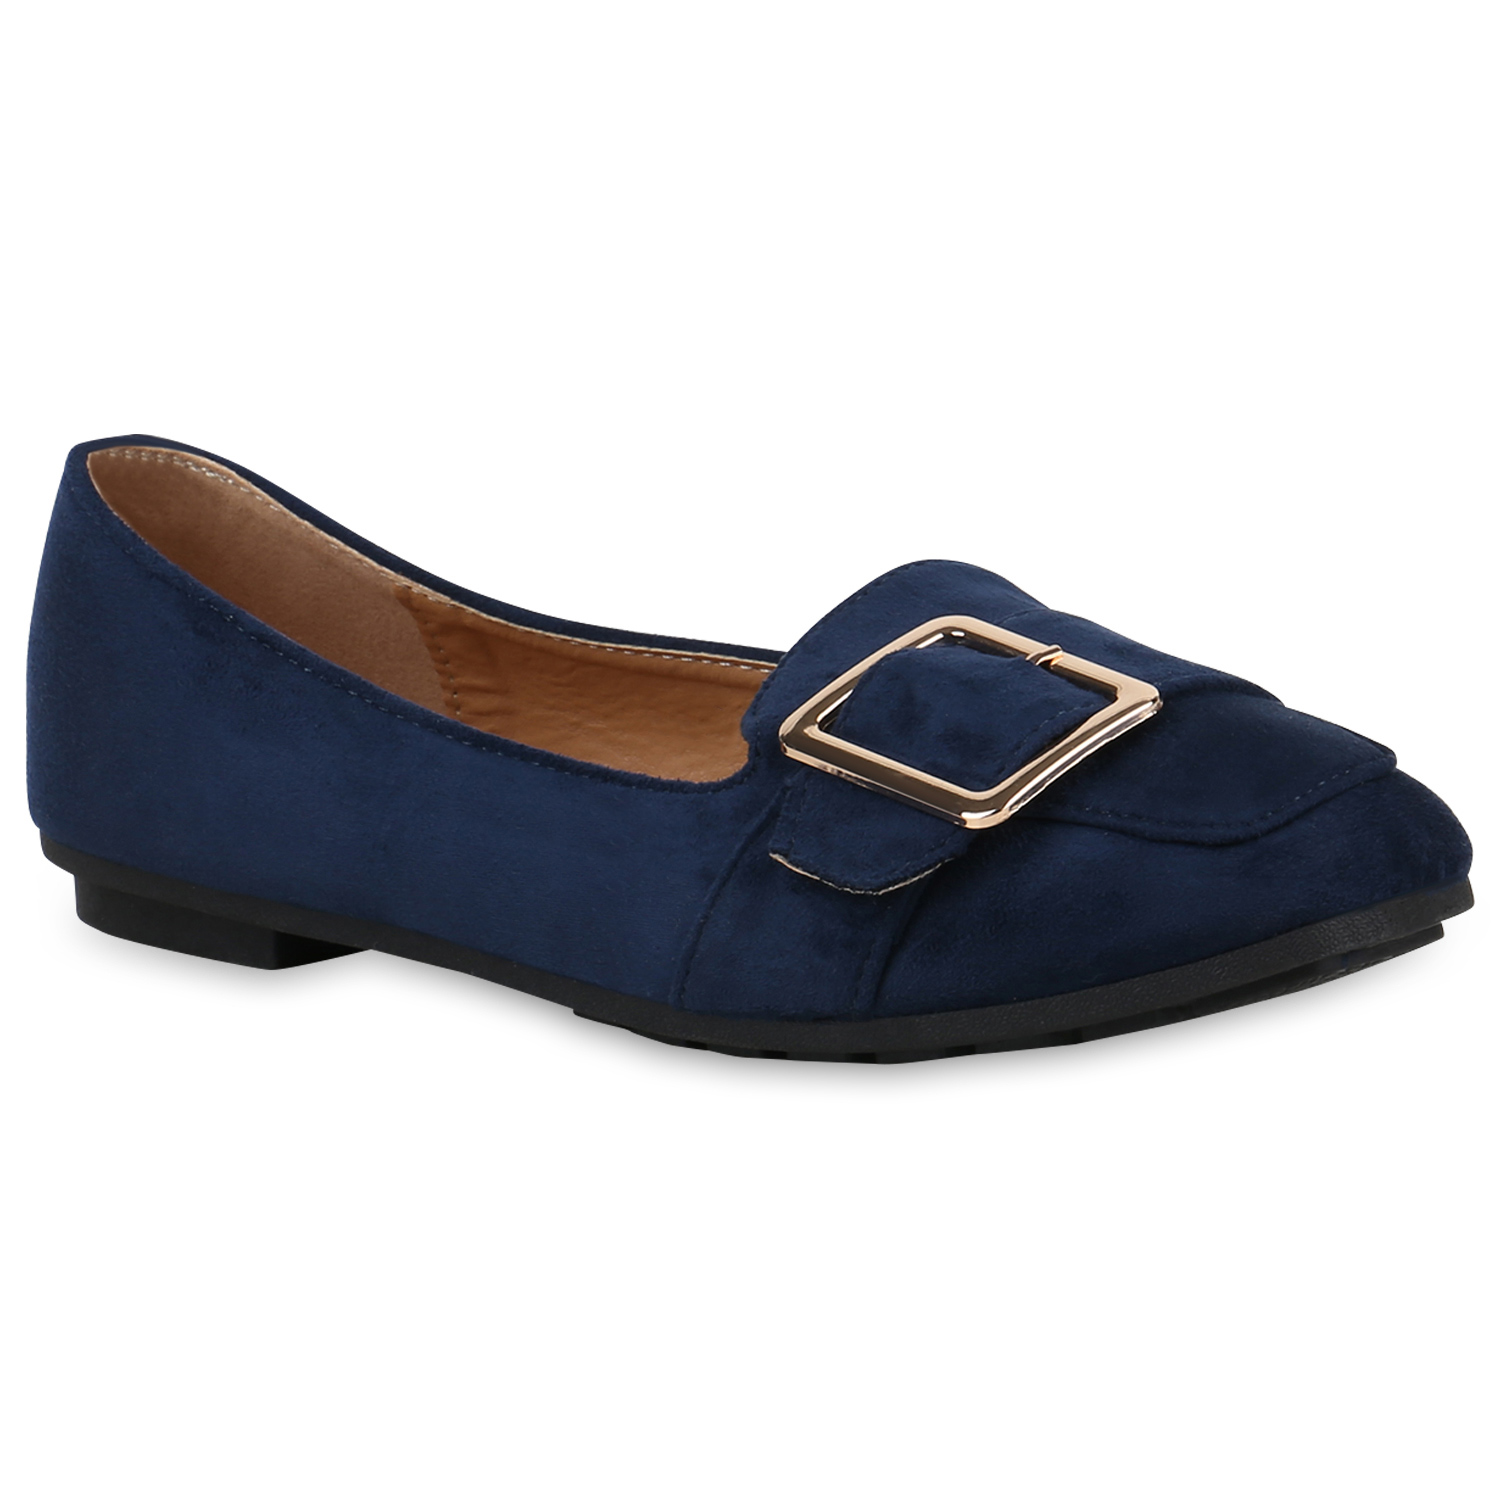 Damen Slippers Loafers - Dunkelblau